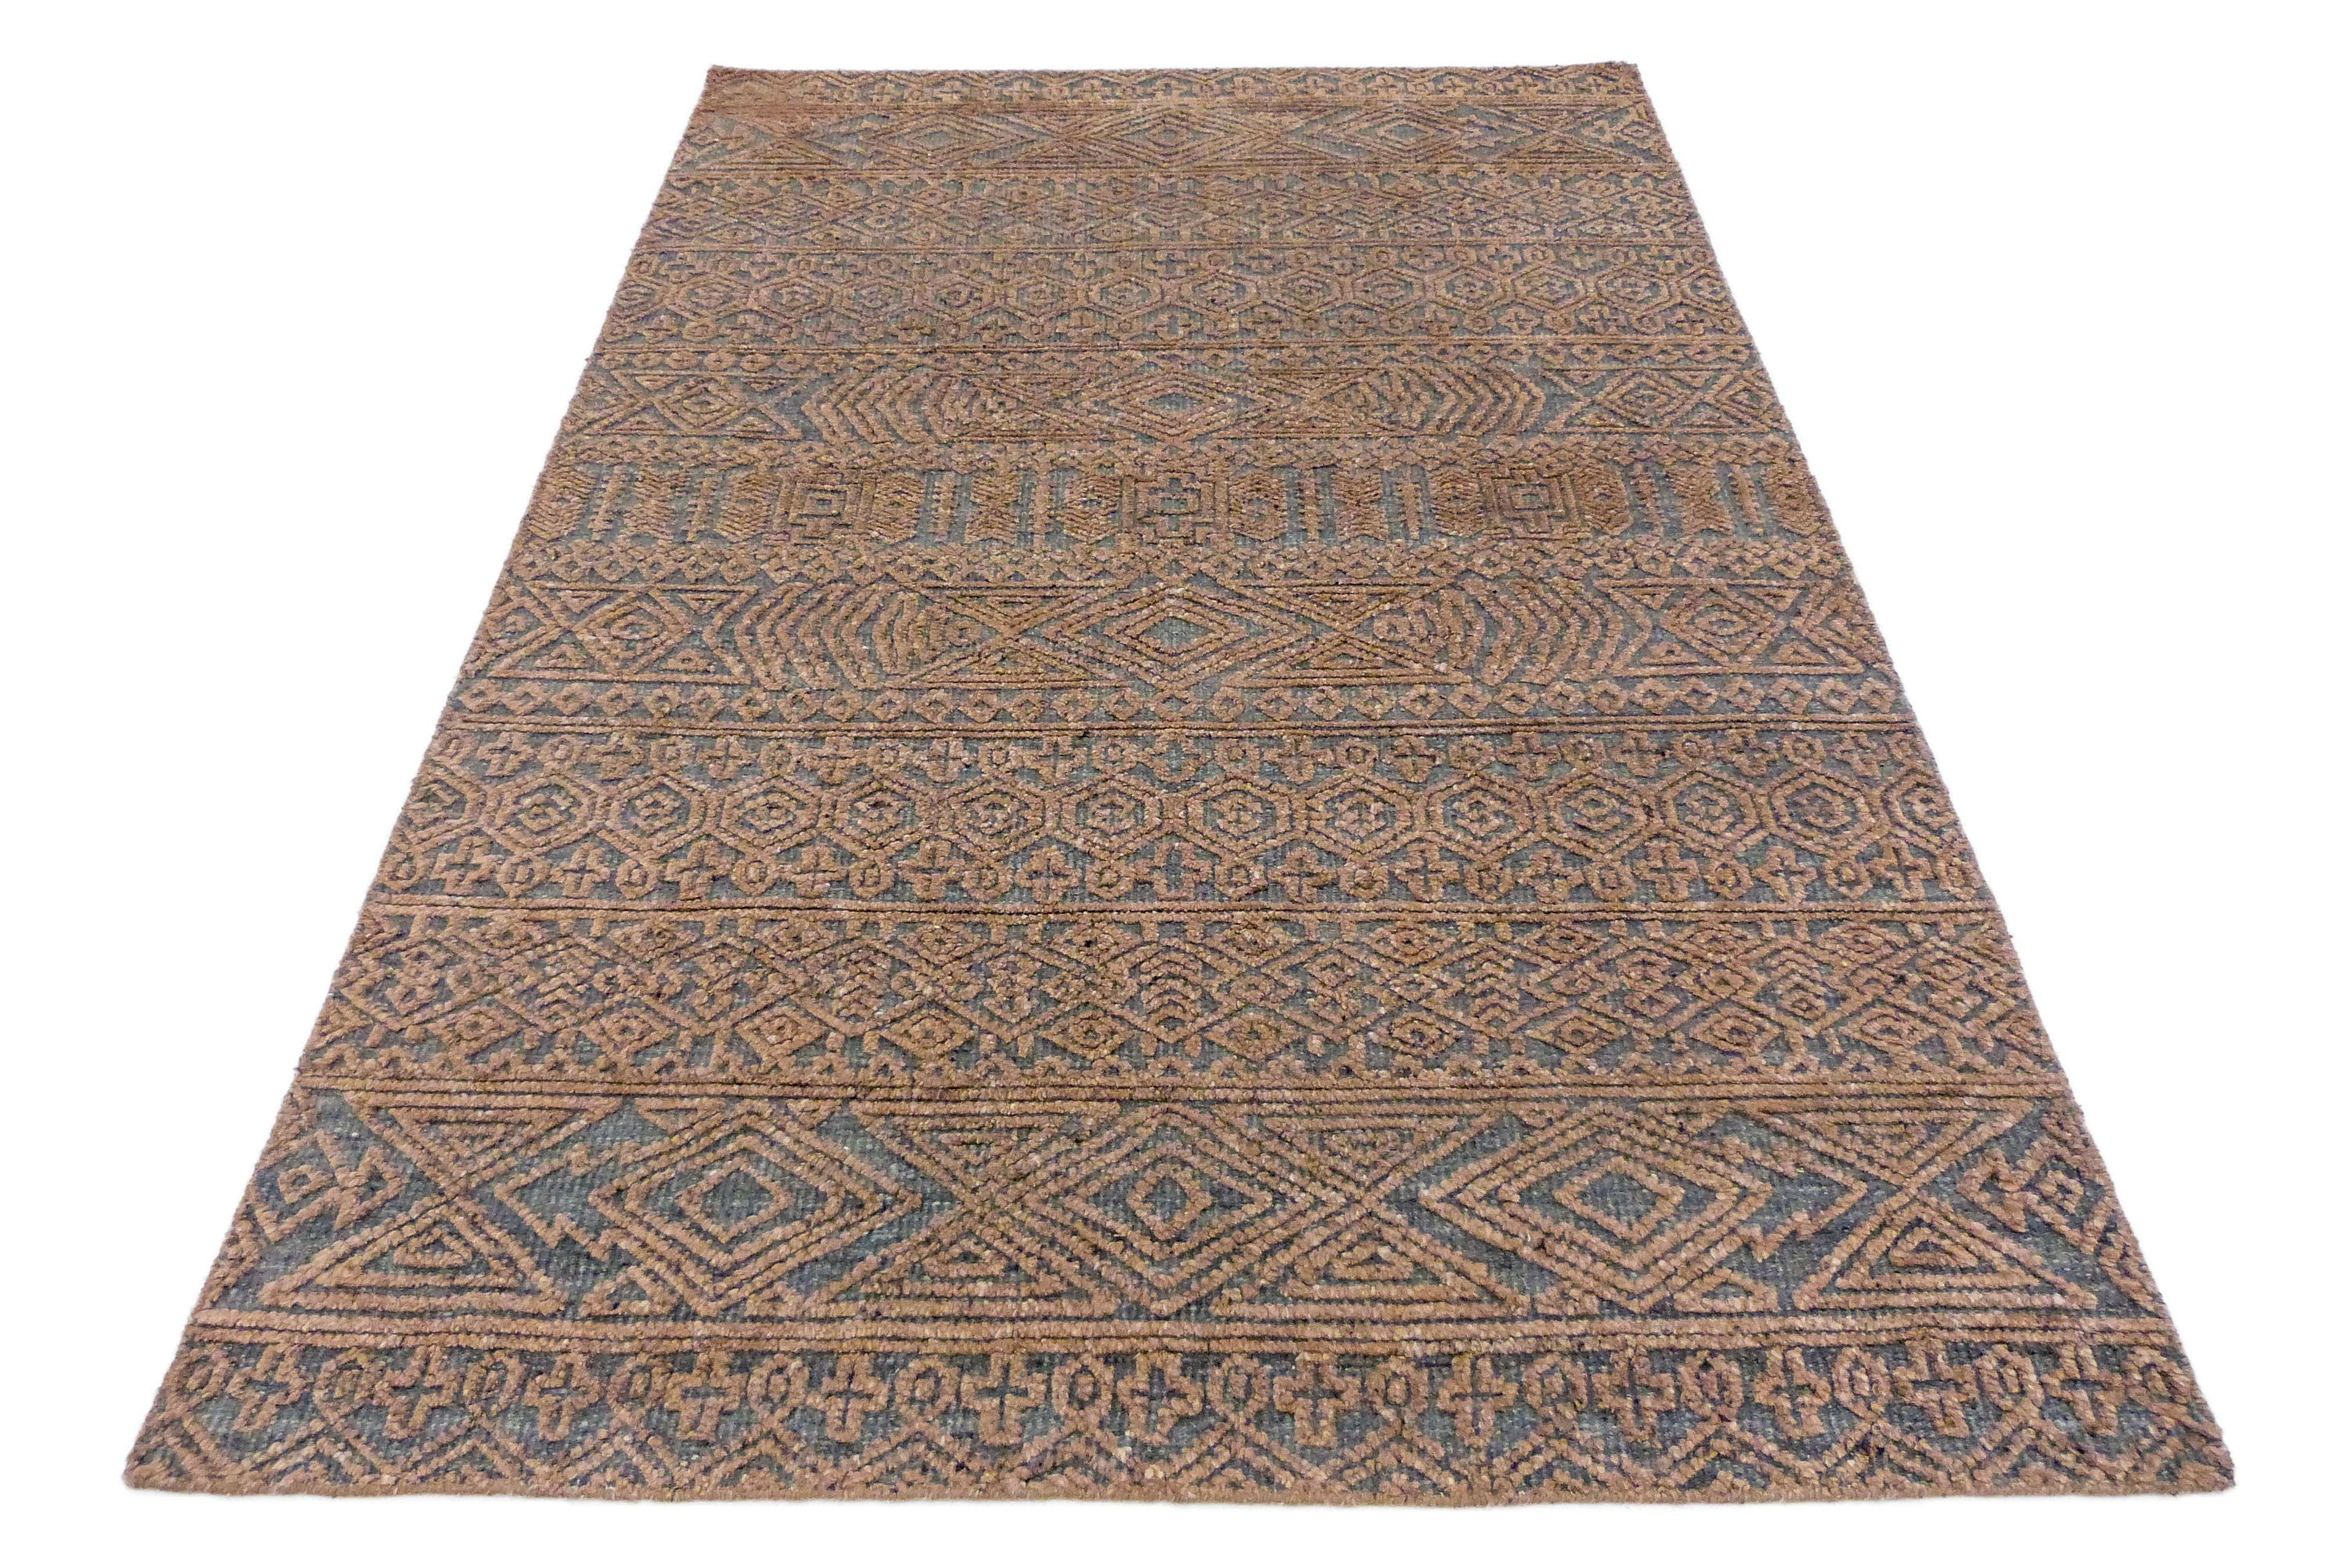 "Bohemian Unique Area Rug Hand-Woven Braided Flatweave rug , 5'3"" x 7'6"" Unique Handmade Kilim rug Home decor with free shipping SP448"